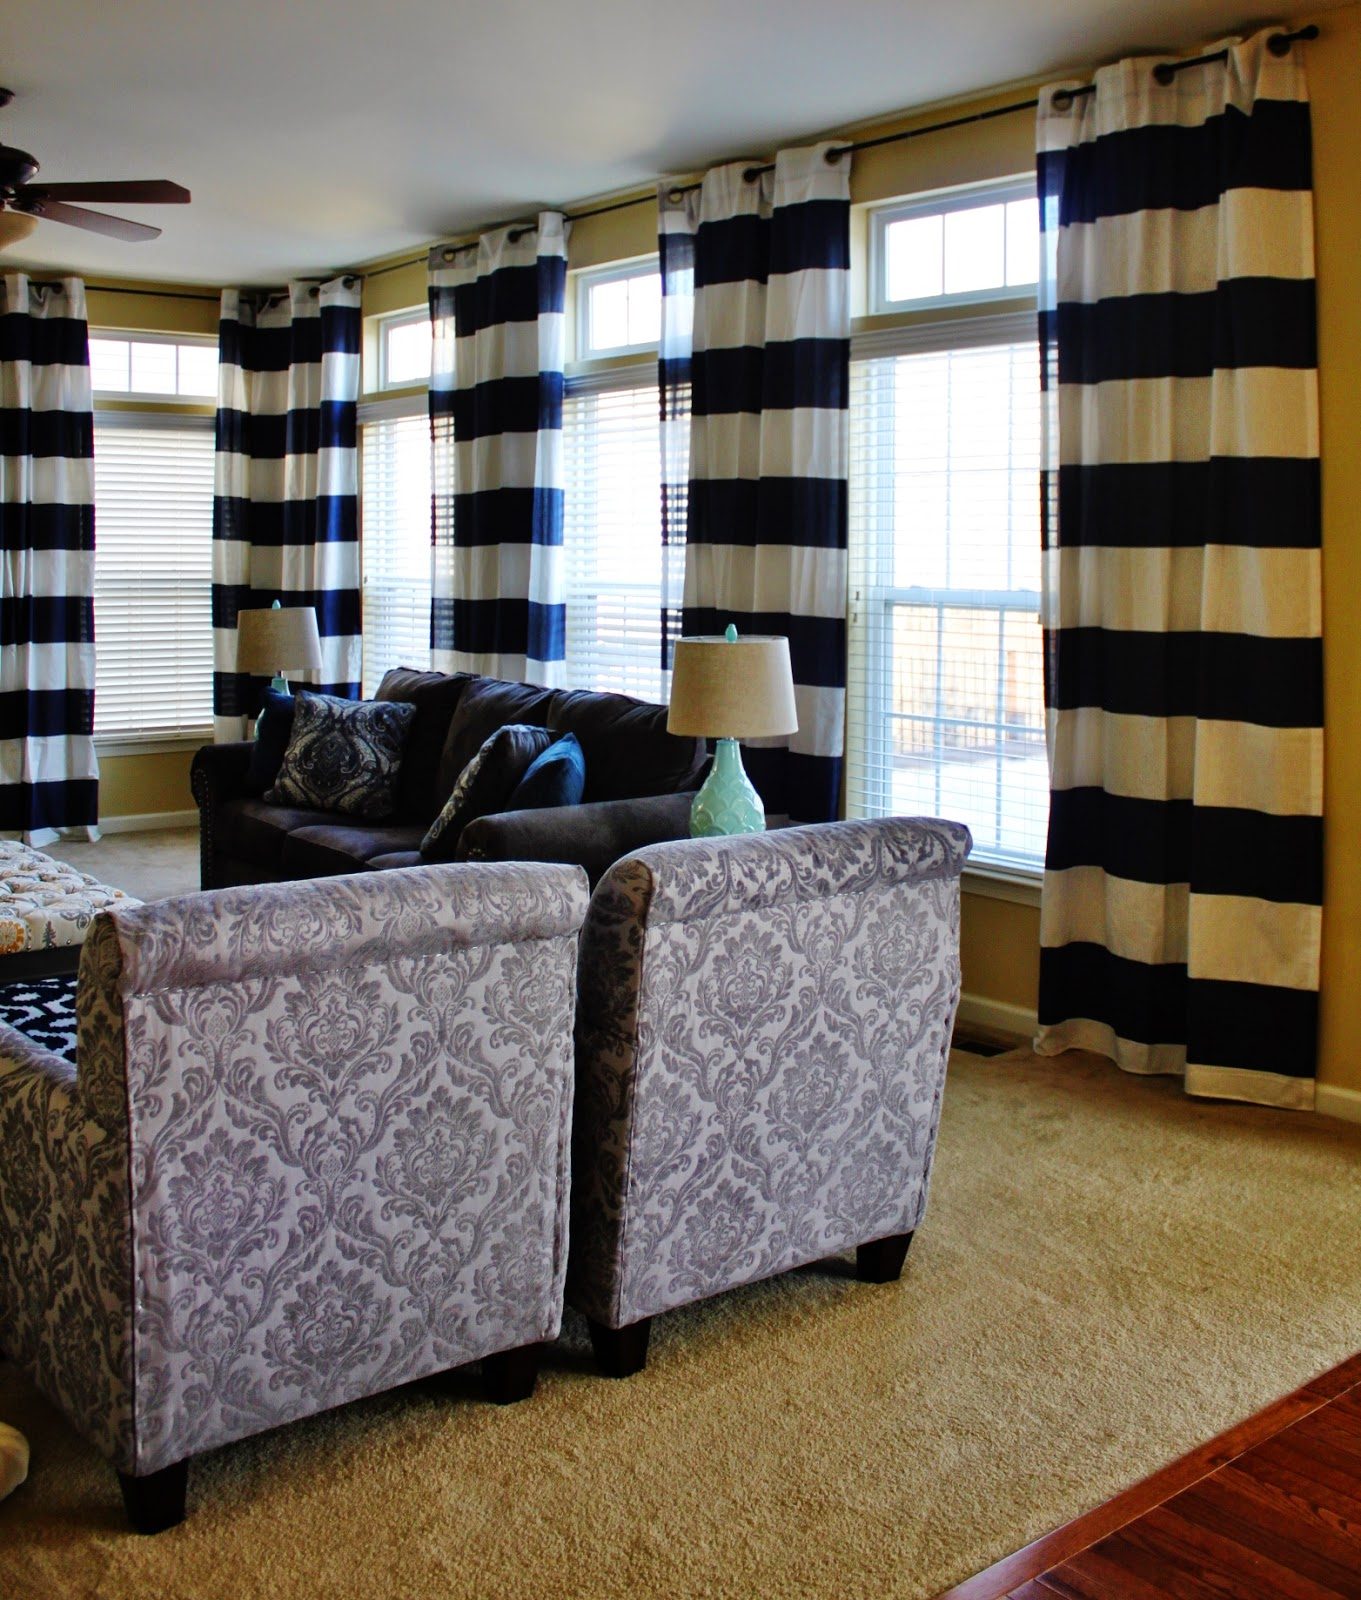 Black and white striped curtains living room - I Considered Buying Fabric Sewing The Stripes Or Even Just Buying Inexpensive White Curtains Painting The Stripes On Both Of Which Would Be Very